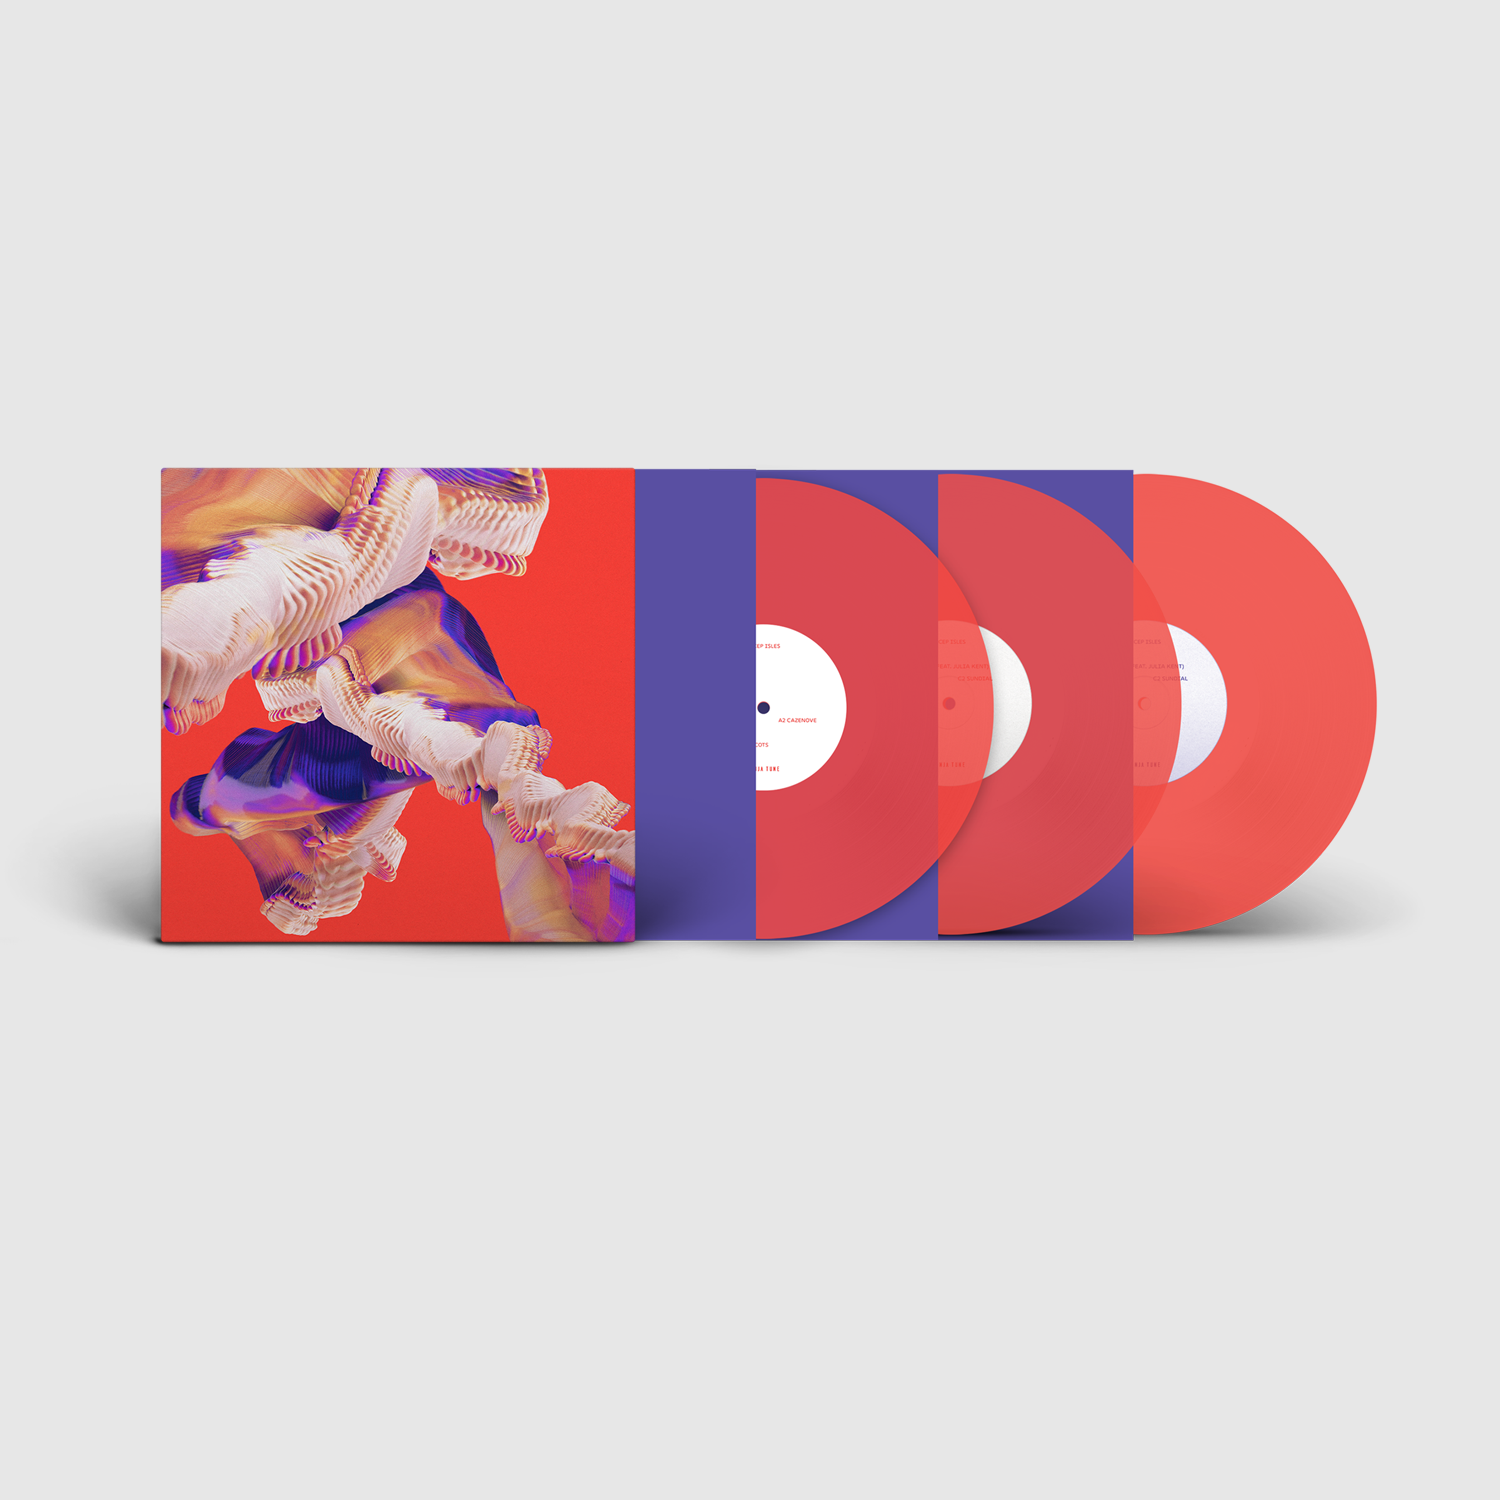 Bicep - Isles (3LP Deluxe Coloured Vinyl)